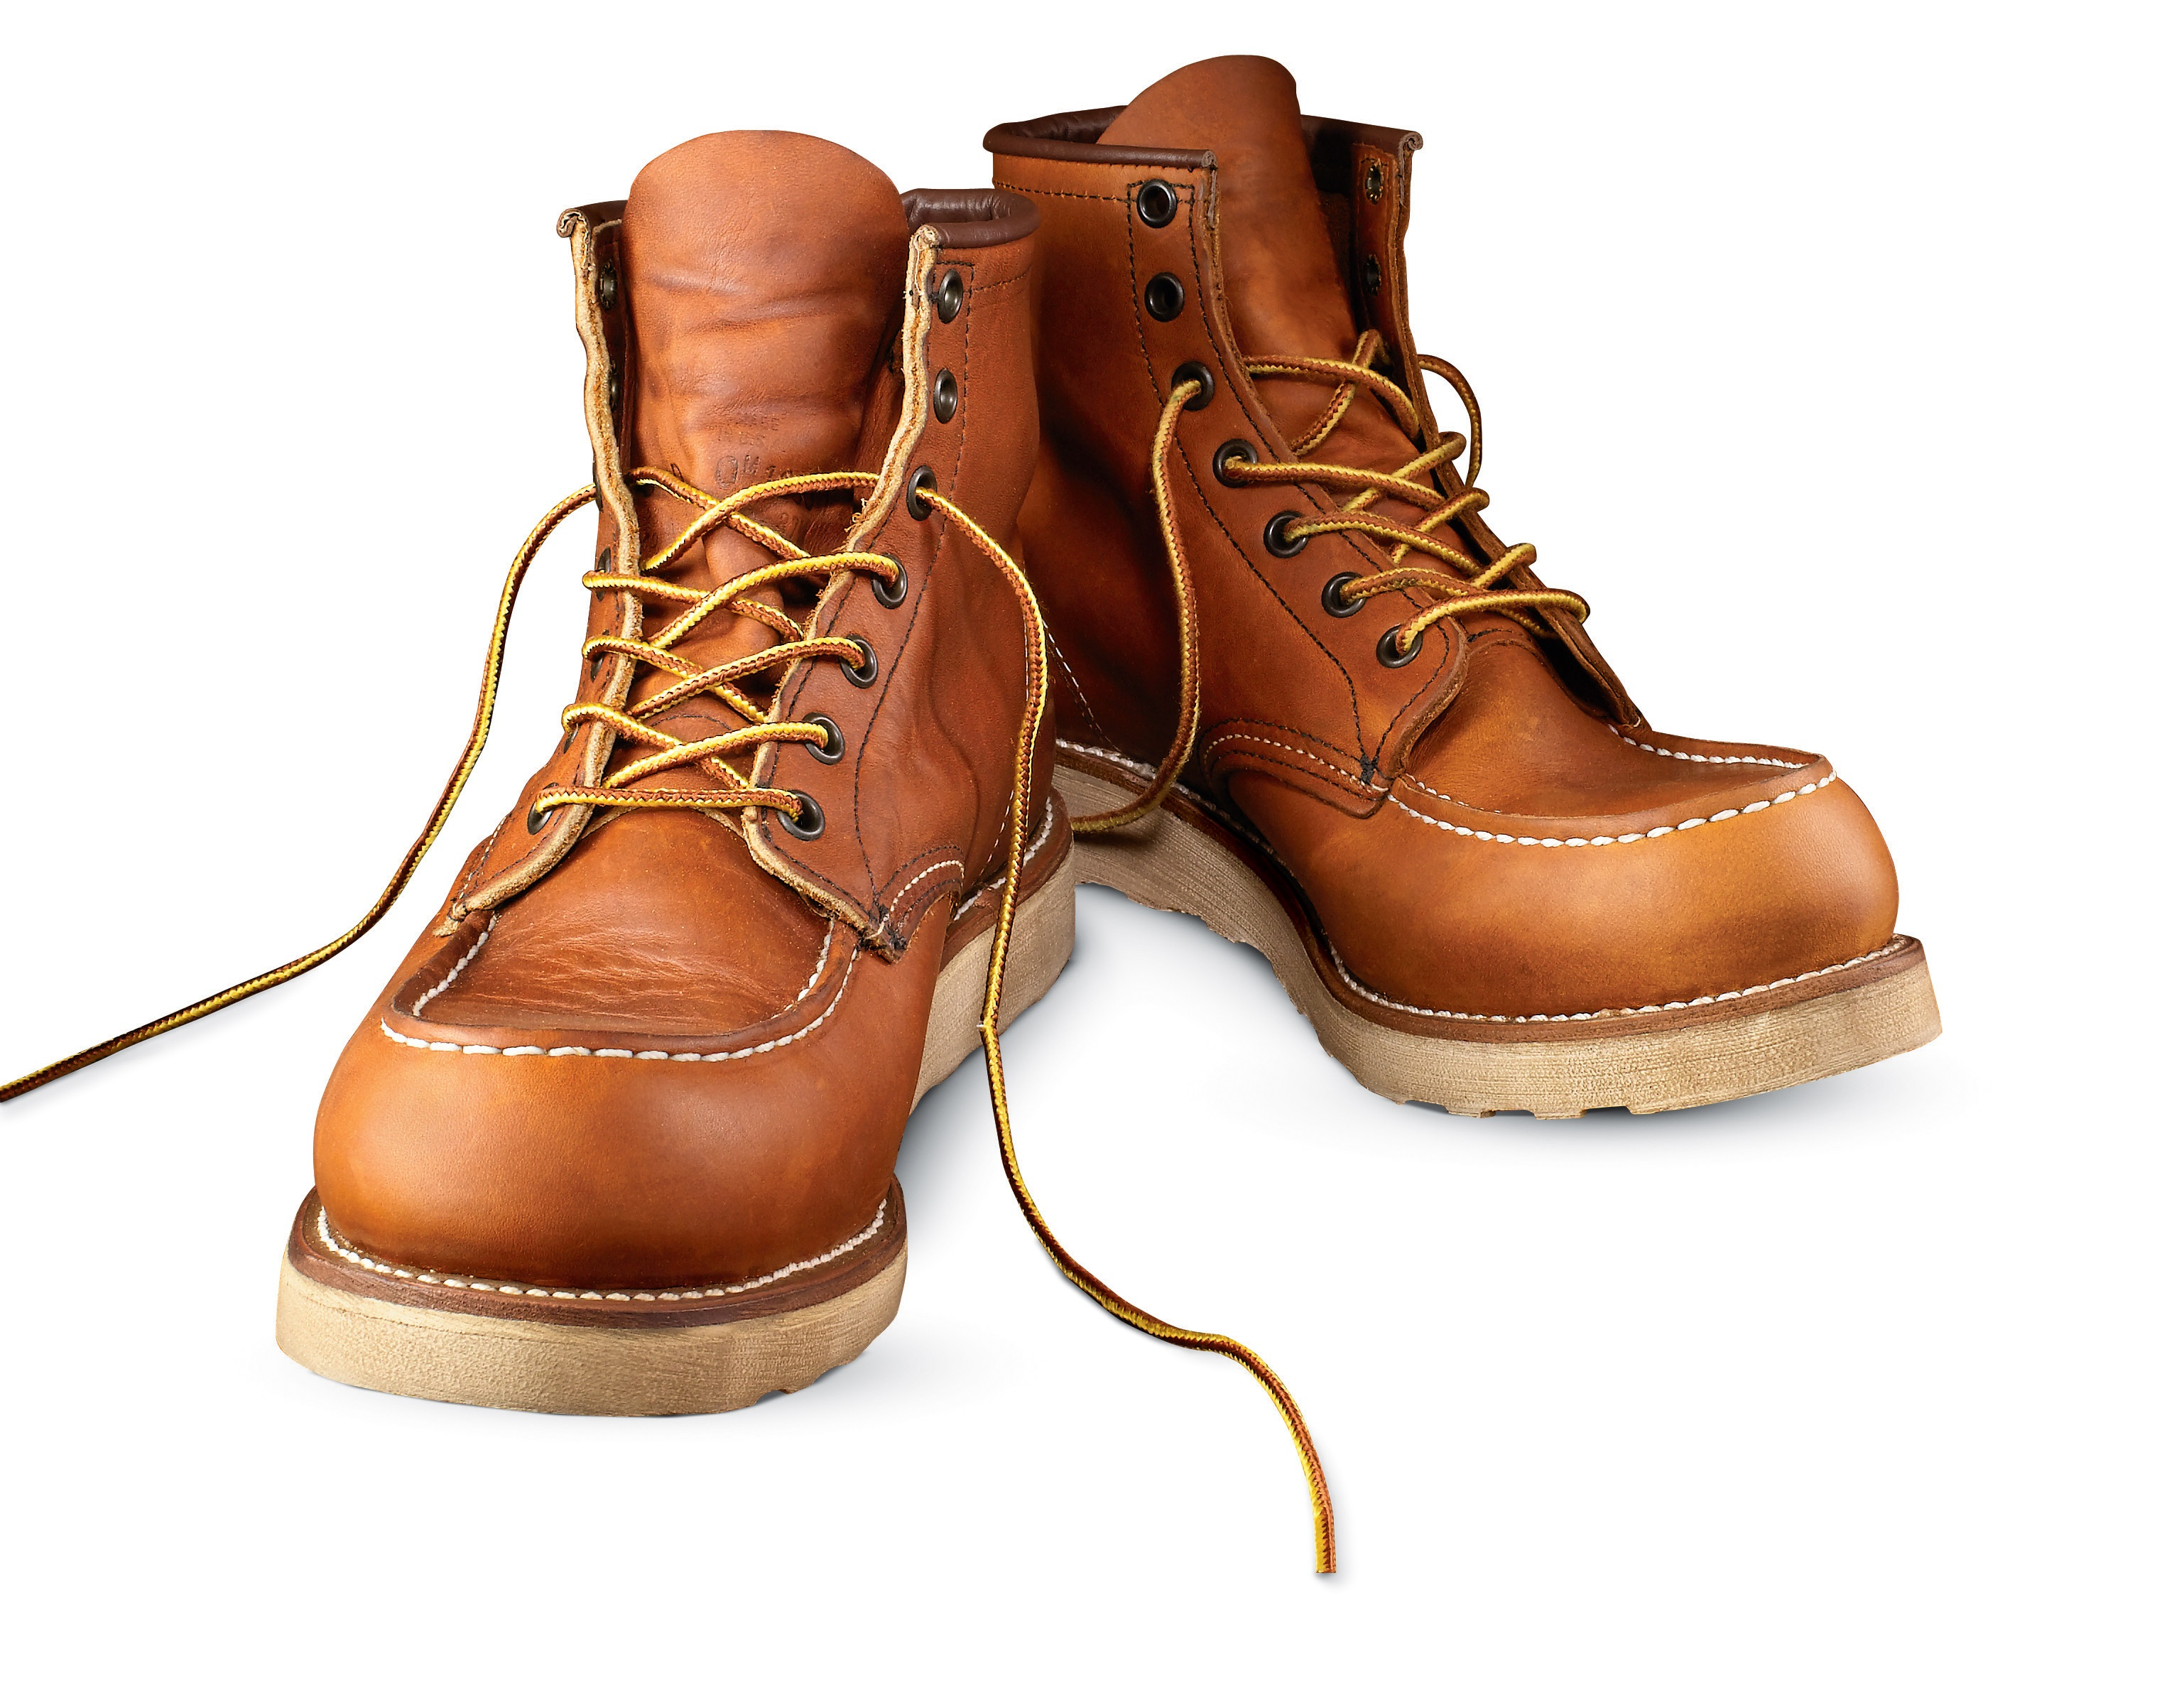 Stomp in Style: Work Boots for Safety, Comfort, and Surefootedness ...